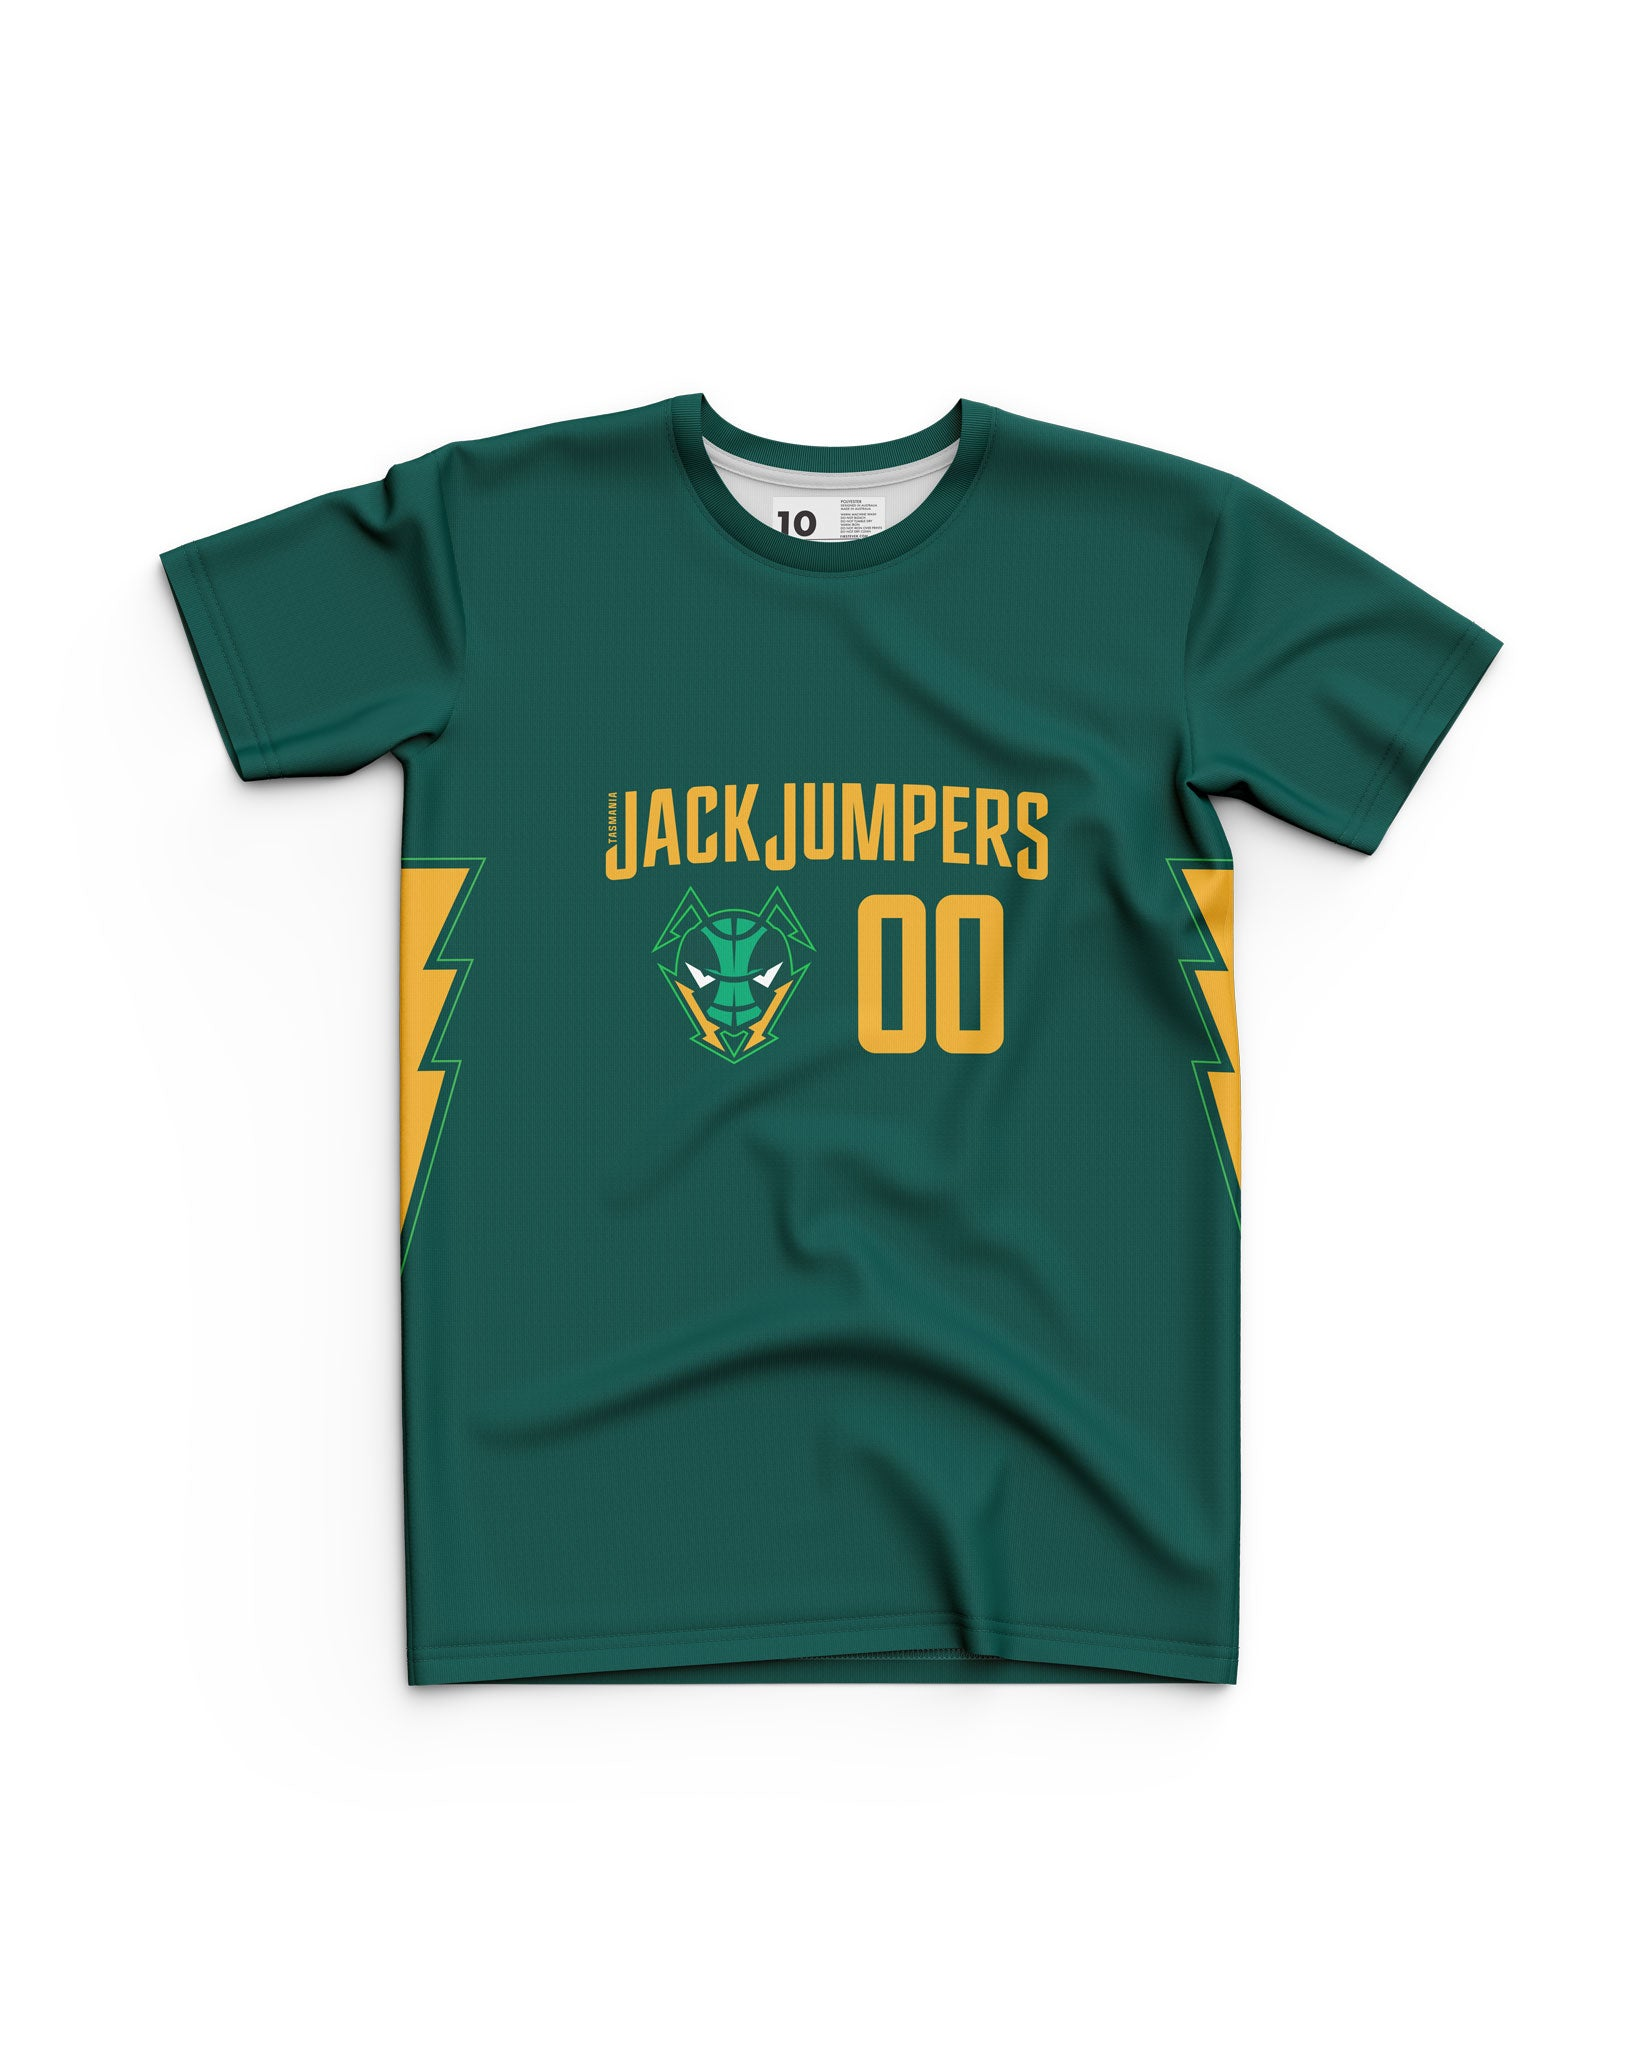 Tasmania JackJumpers Youth Wordmark Tee - Personalised